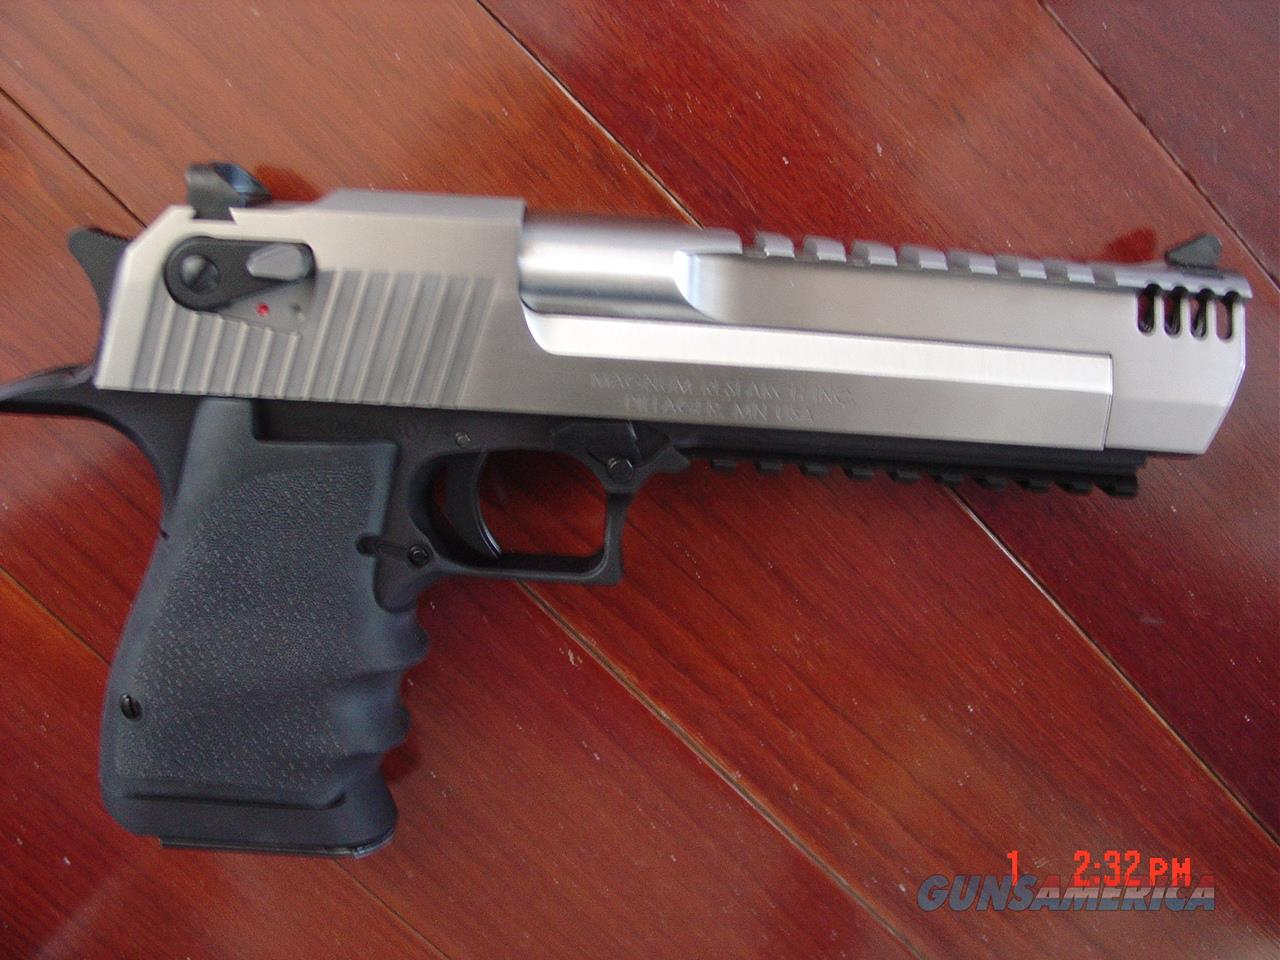 Magnum Research Desert Eagle 50AE,2 tone stainless with built in Compensator ,the latest just out !!a rare Hand Cannon,that looks awesome also !!   Guns > Pistols > Desert Eagle/IMI Pistols > Desert Eagle